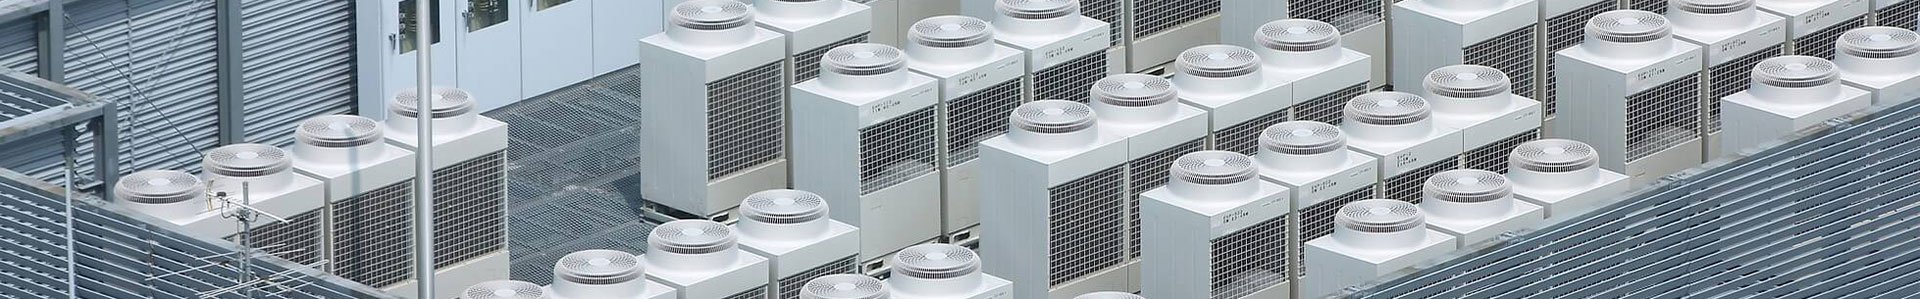 air conditioning services in Melbourne and Geelong